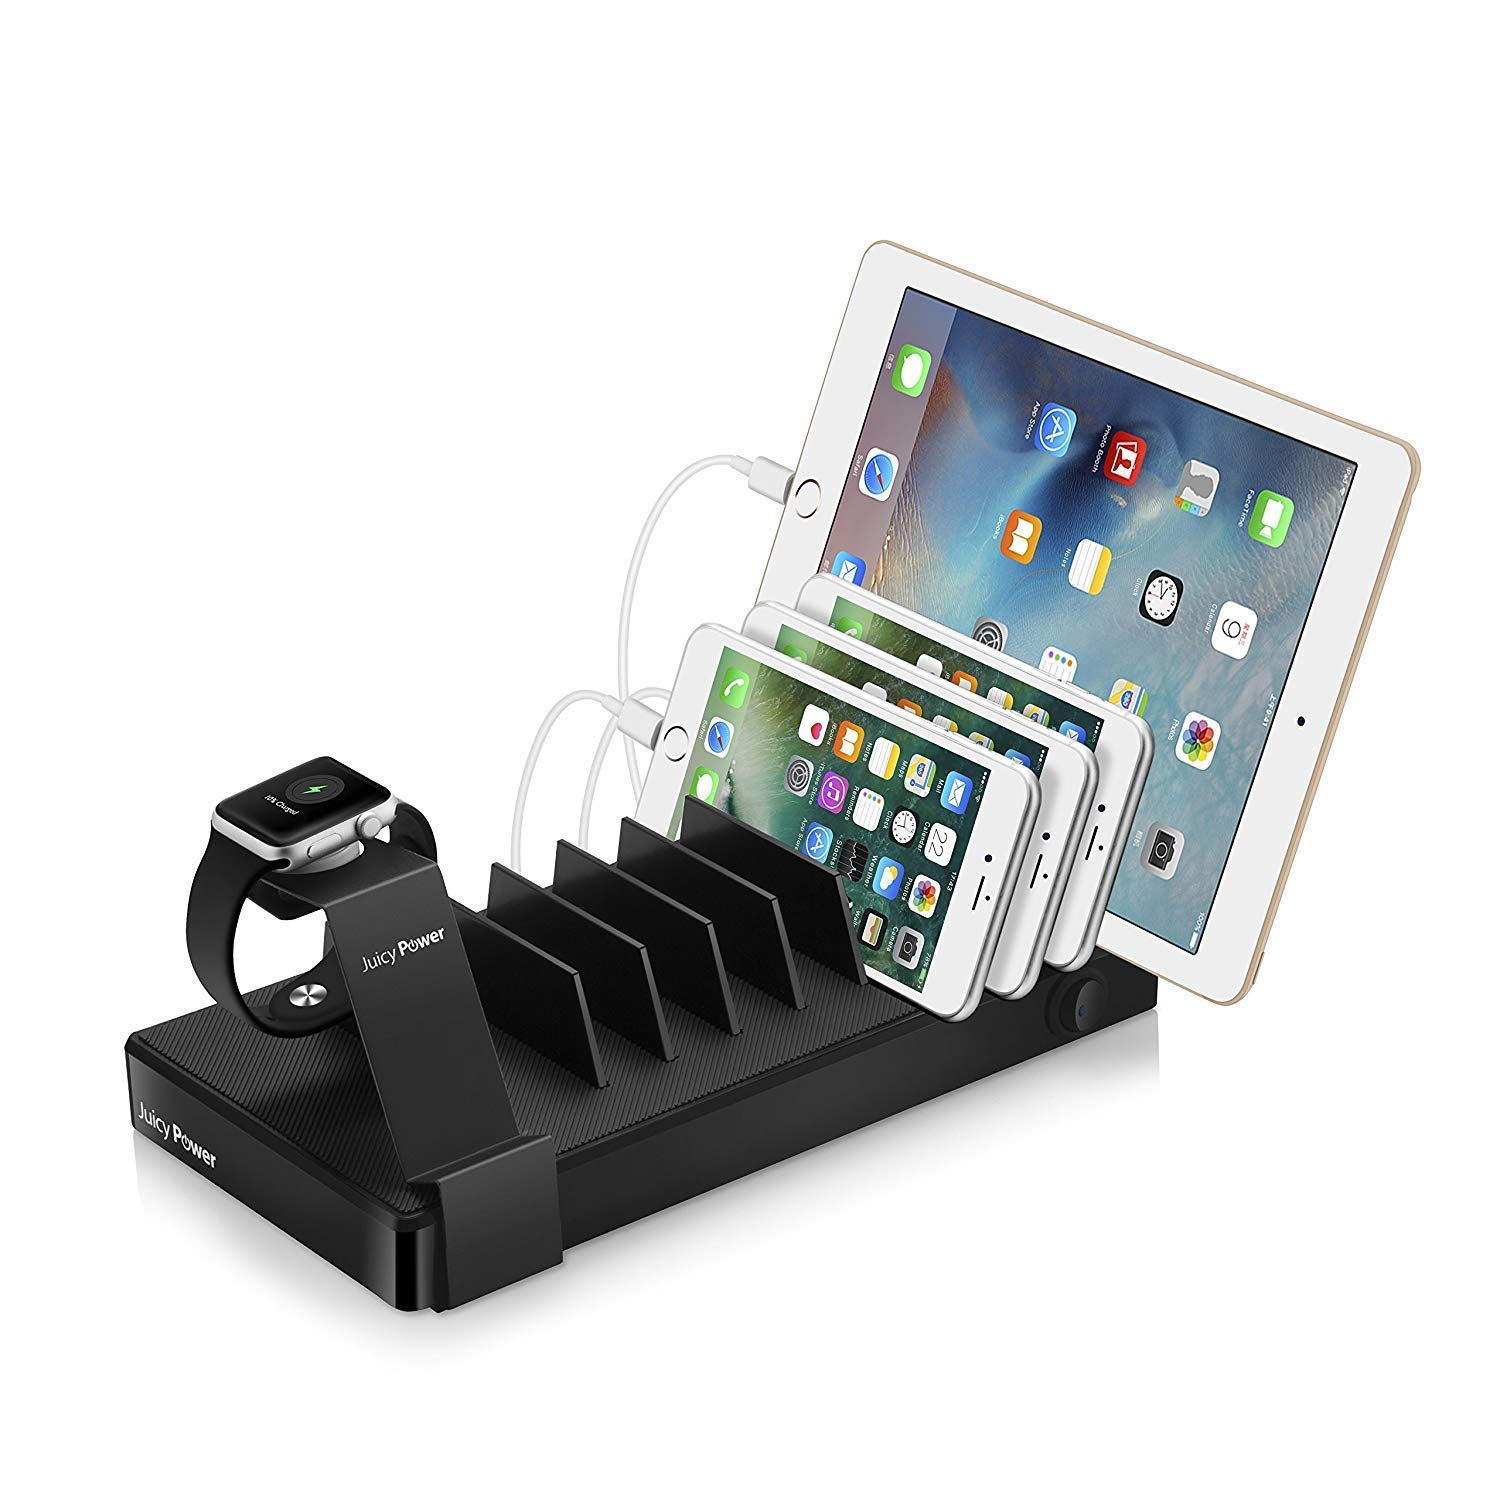 Juicy Power 90Watt iPhone iPad Charging Station 10 Ports - Charge & Organize 9 Apple Devices - with 1 USB-C Charging Port & Apple Watch Organizer